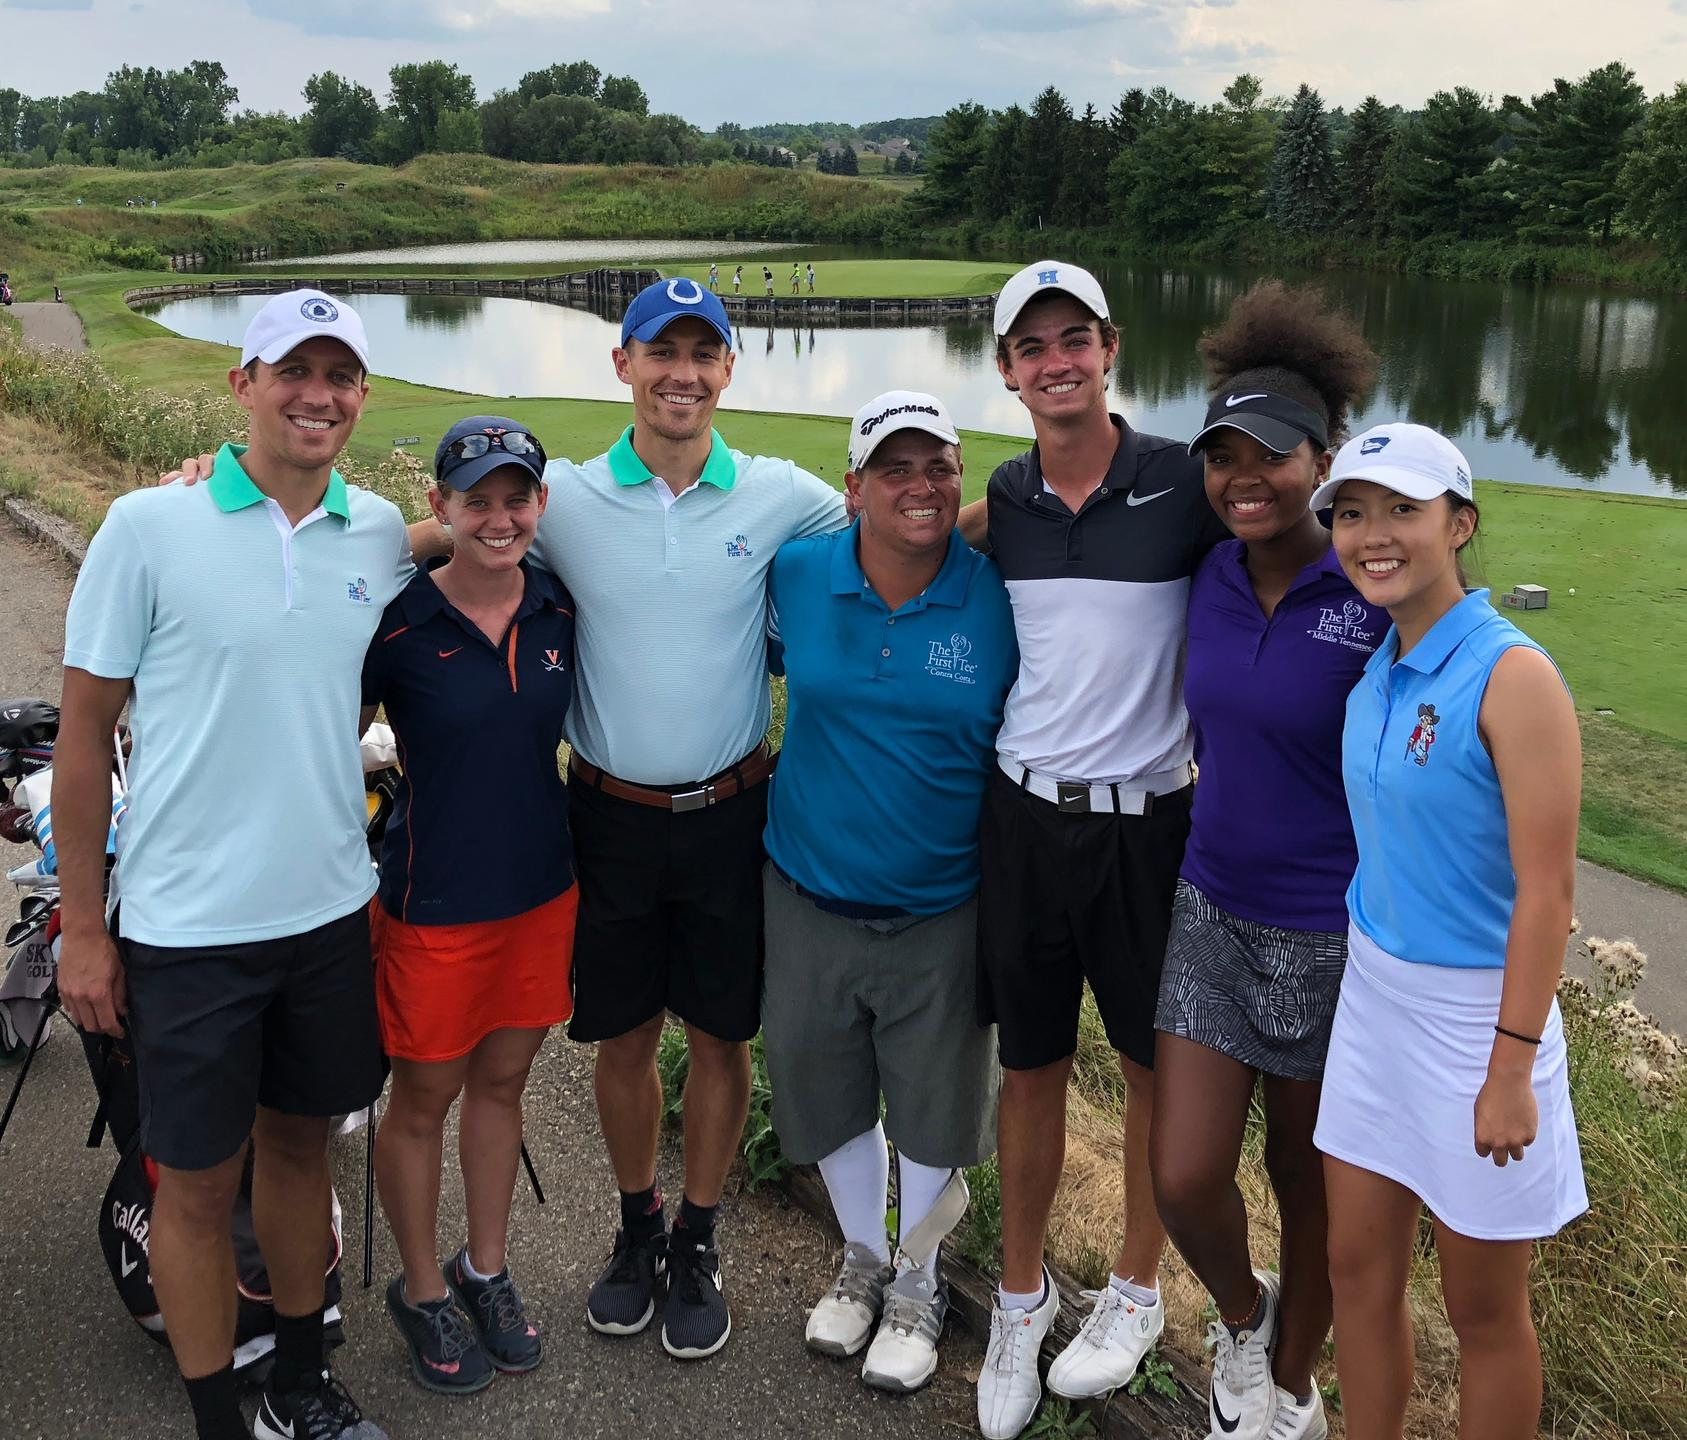 220 partners with The First Tee